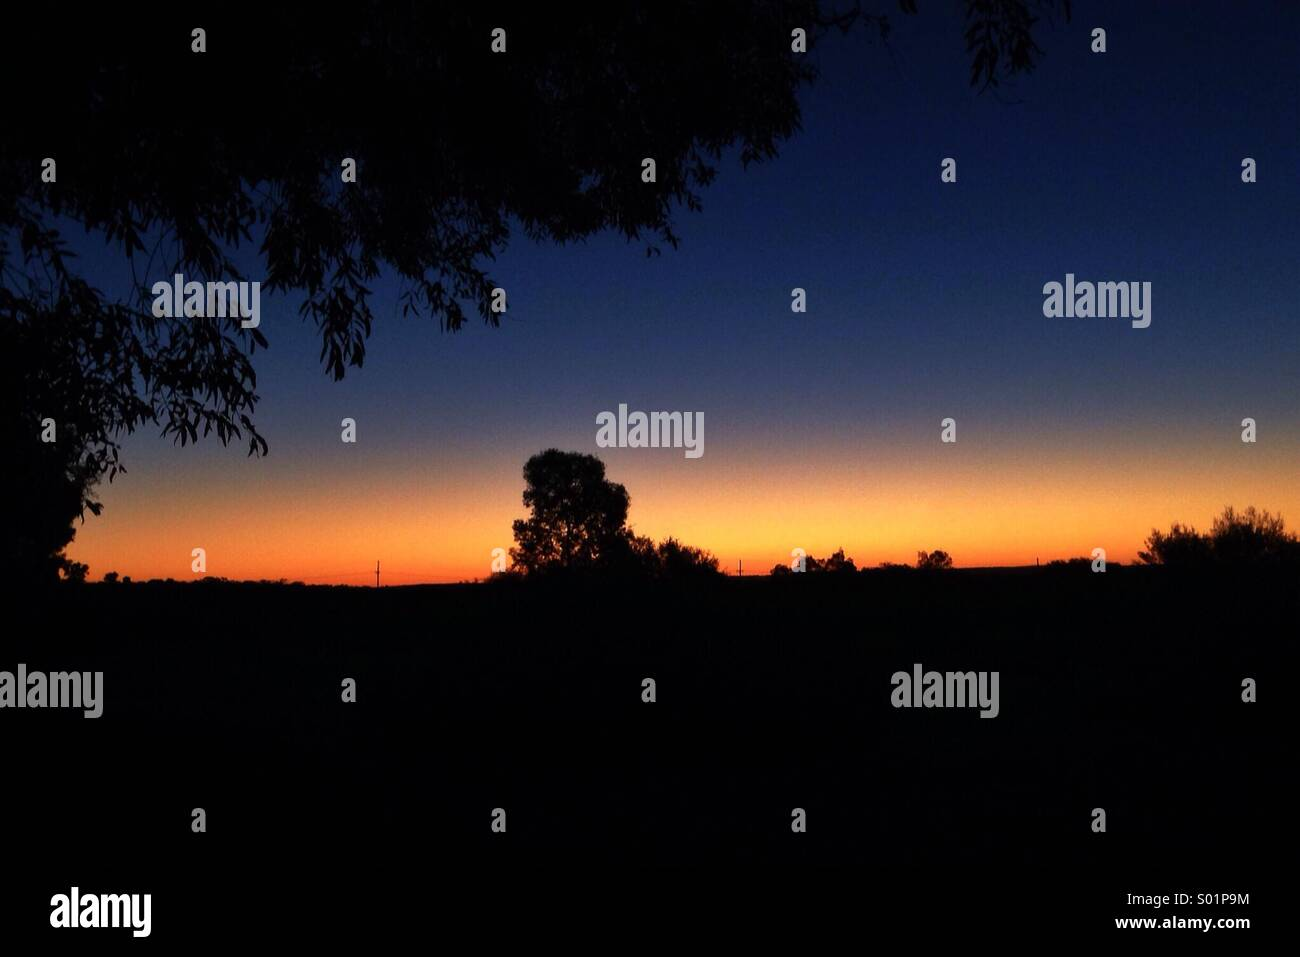 There goes the sun - Stock Image